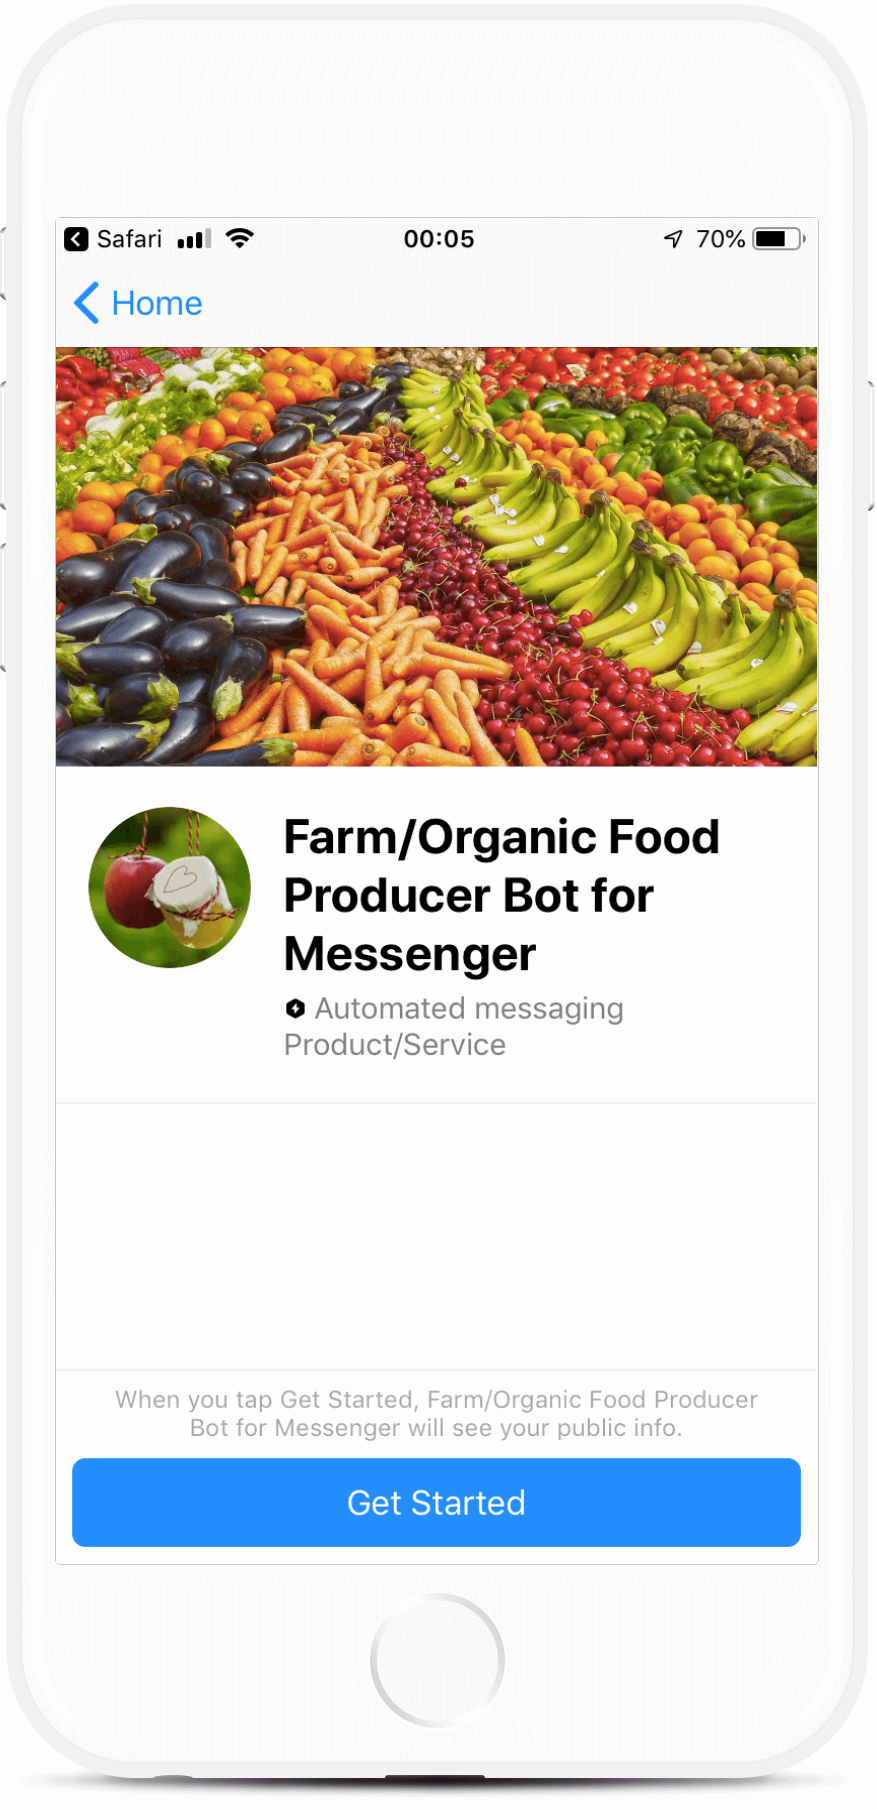 Farm/Organic Food Producer Bot for Messenger bot screenshot